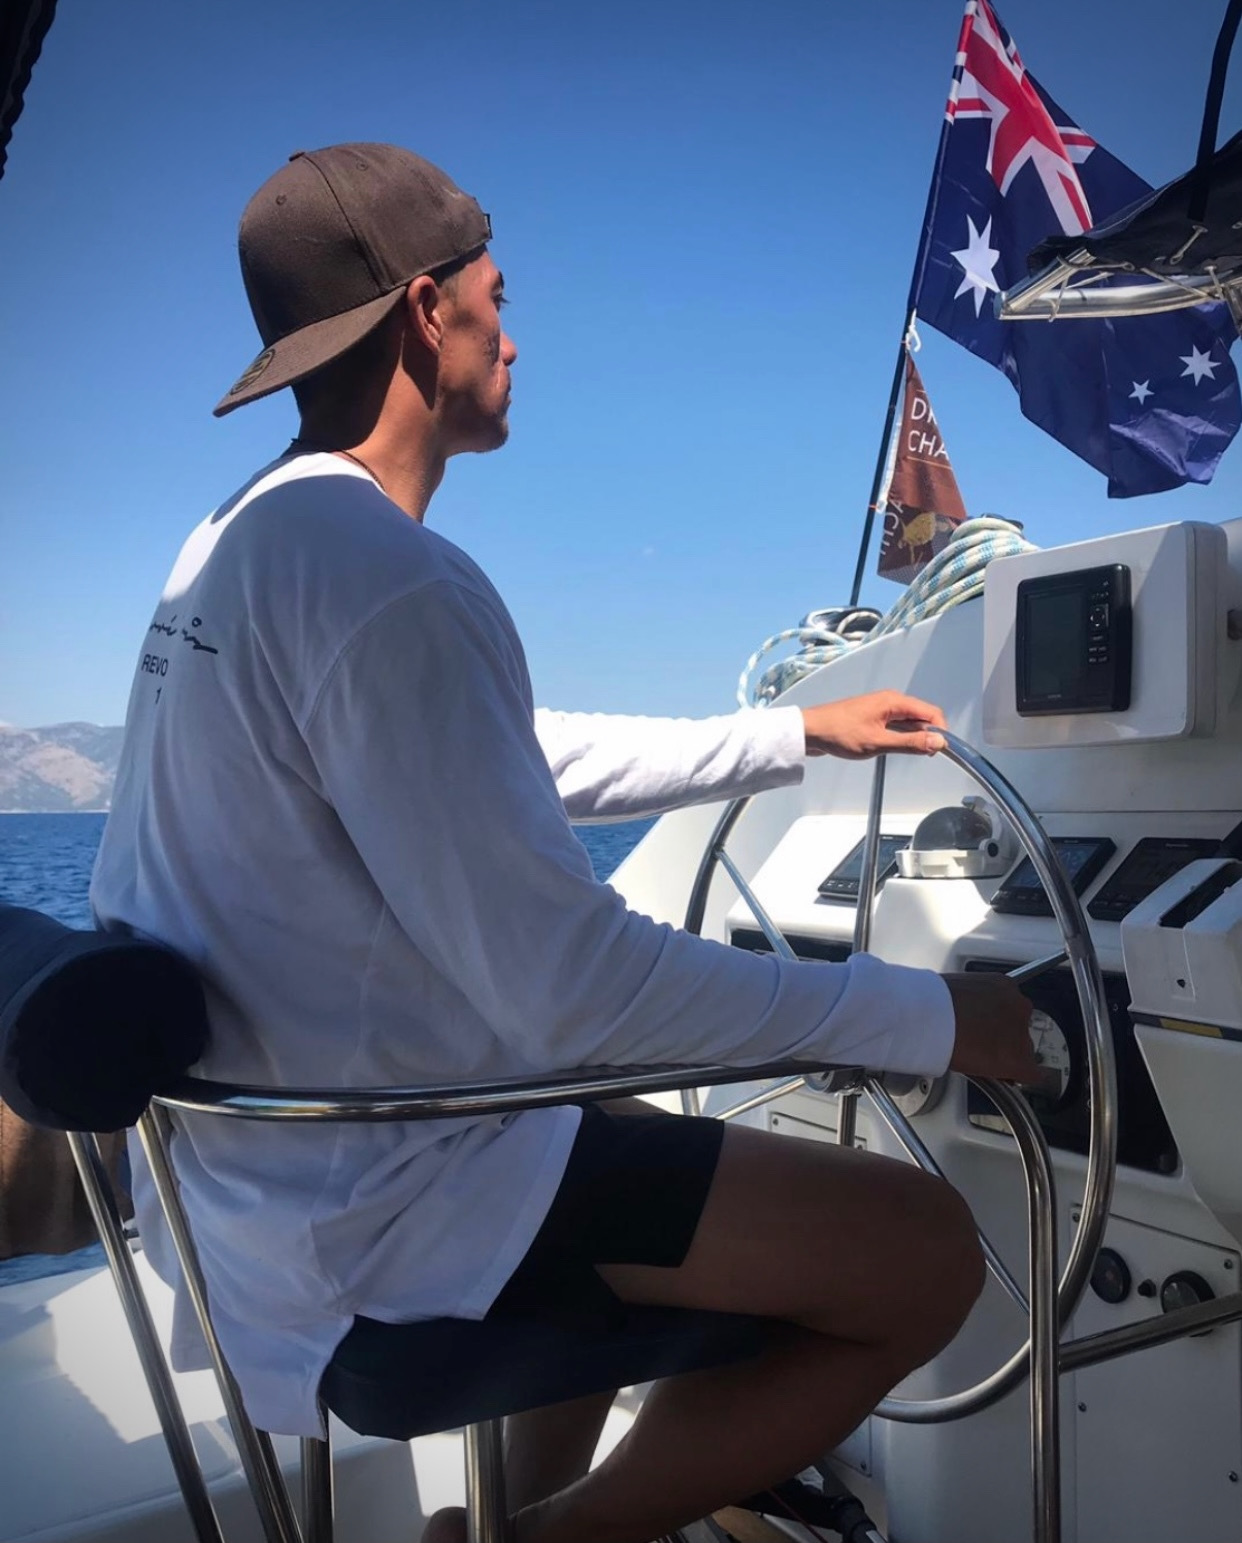 Kev out on the water!